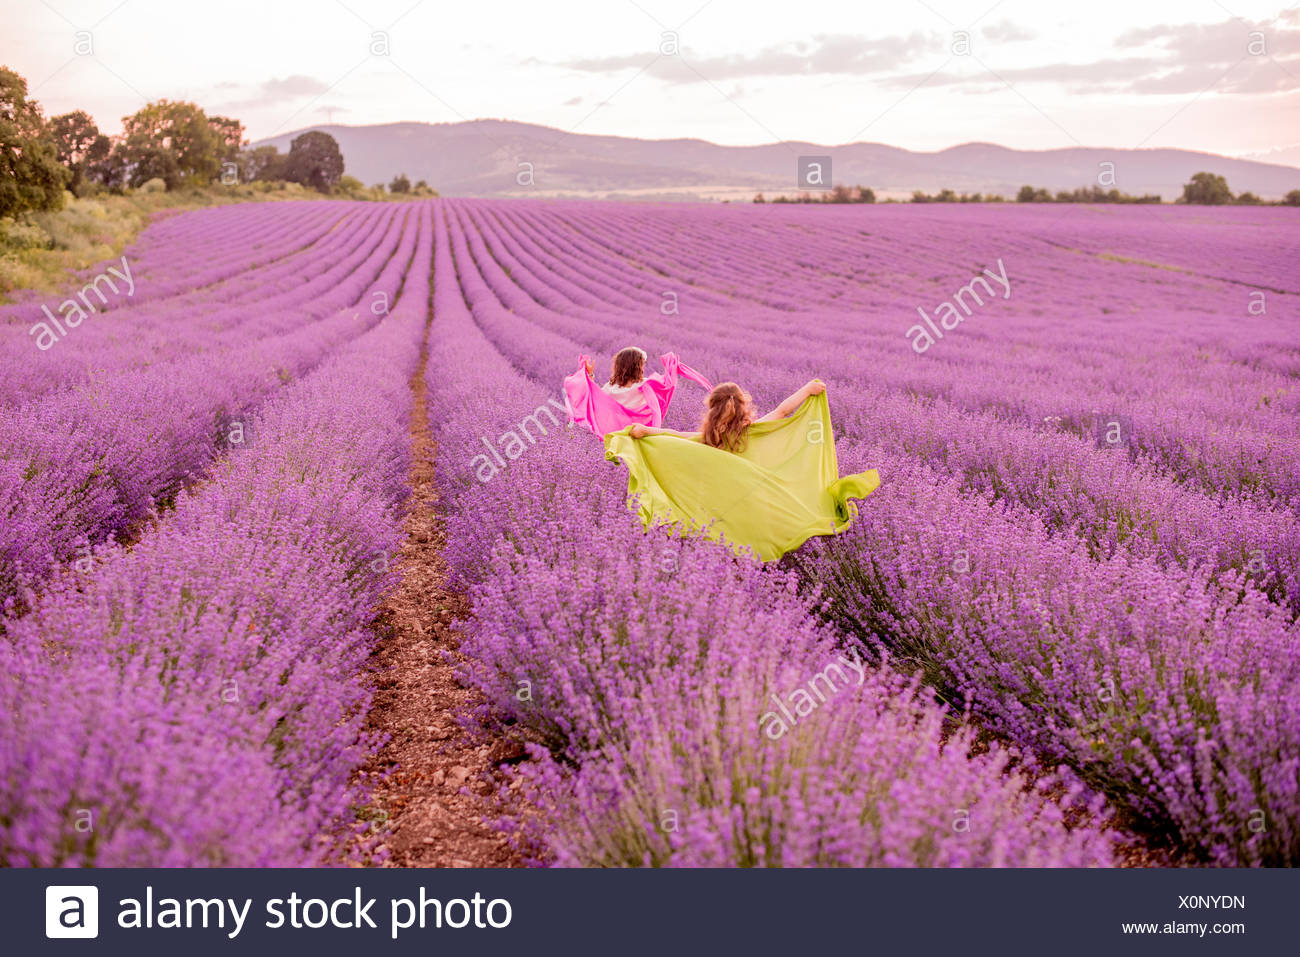 Two girls running through lavender field, Kazanlak, Bulgaria - Stock Image